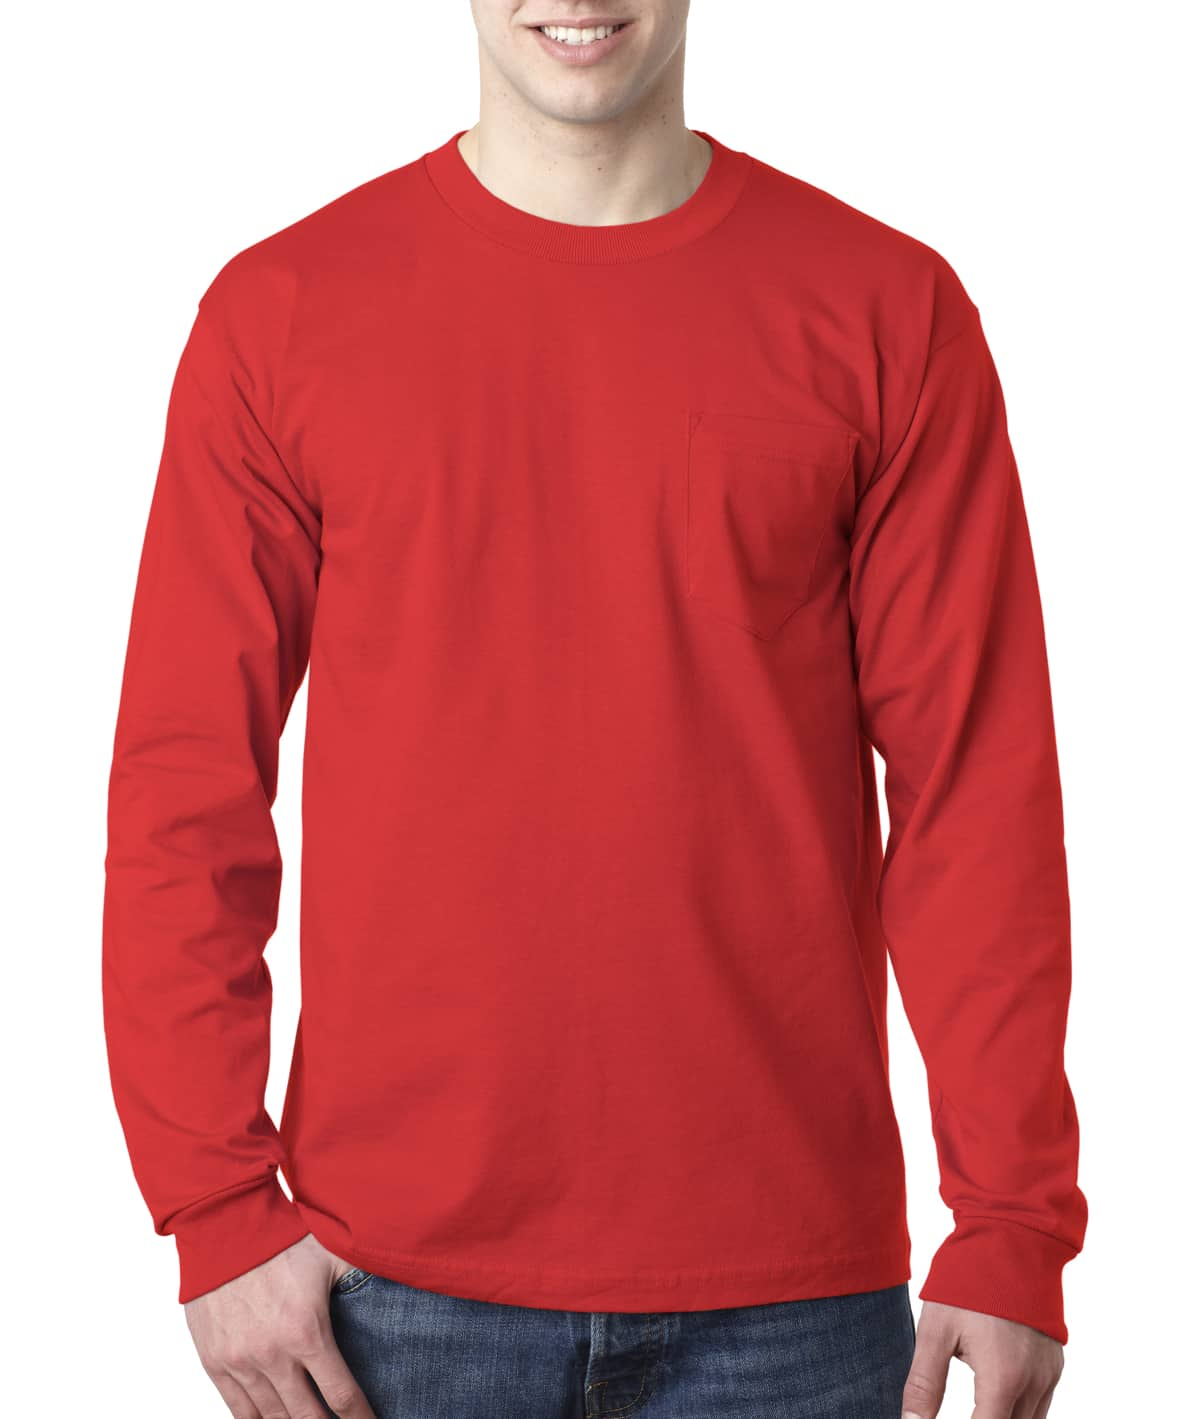 8100 Bayside Made in the USA Long Sleeve Tee with Pocket